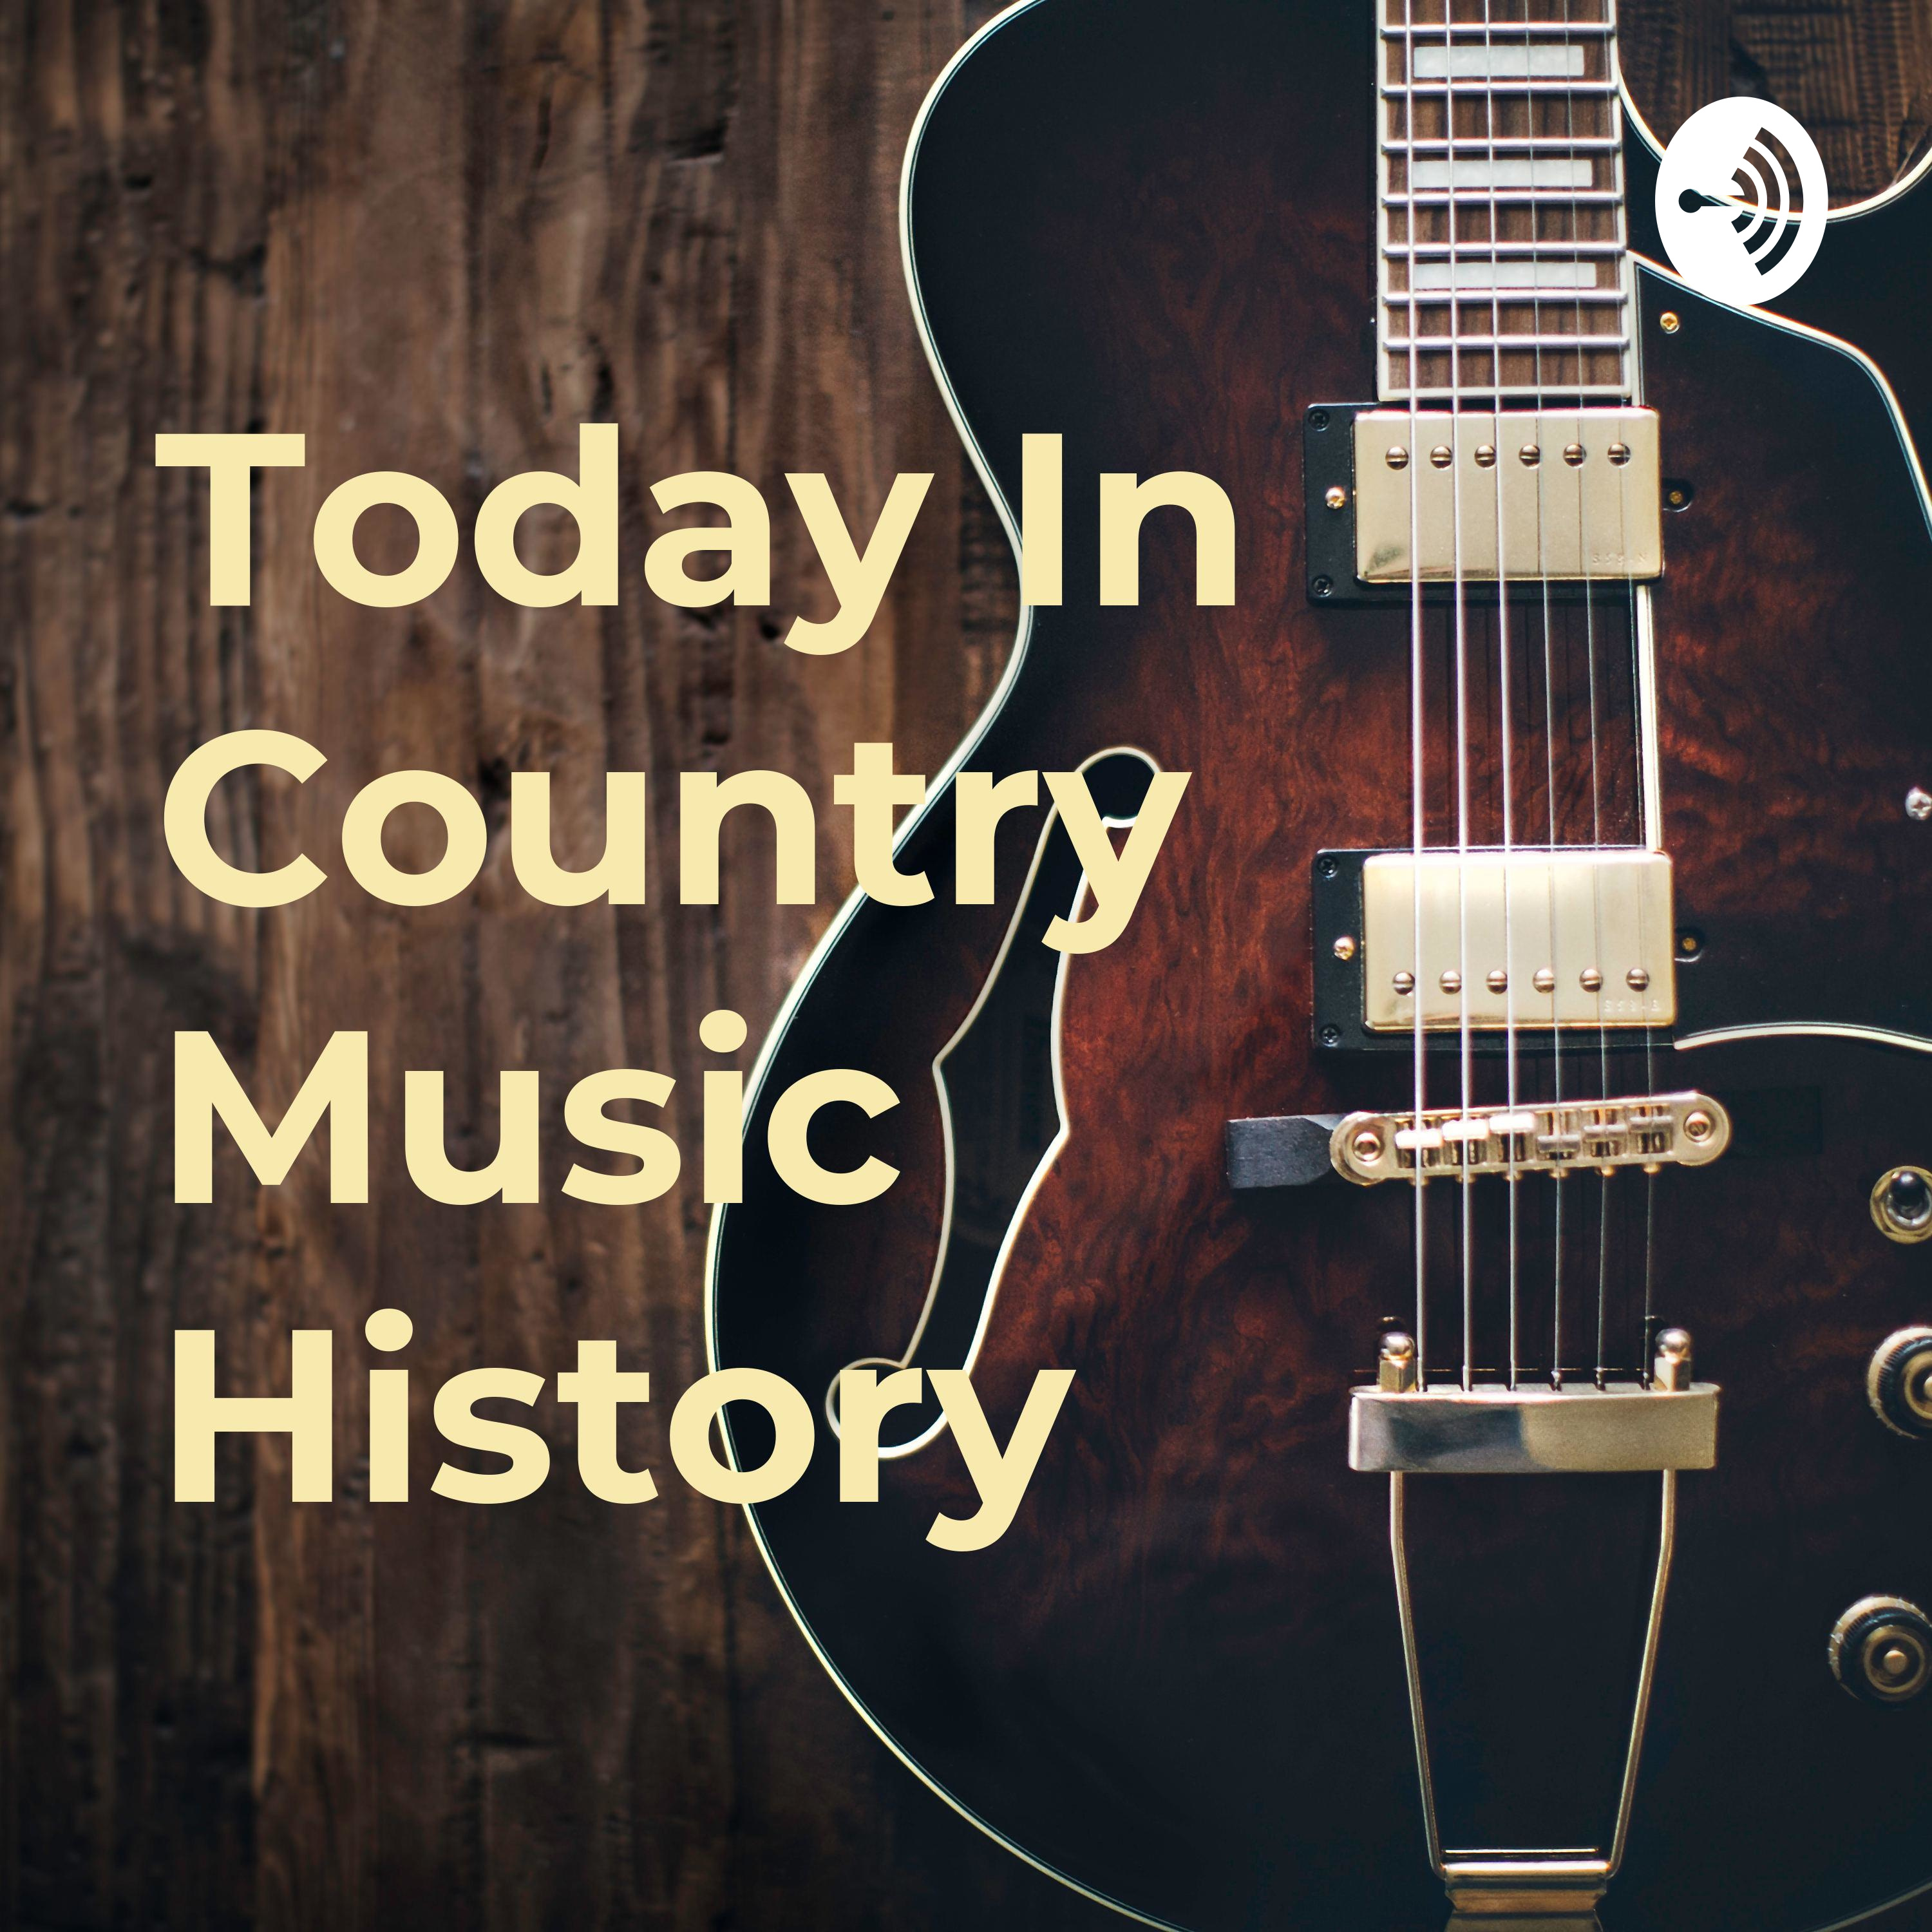 Today In Country Music History